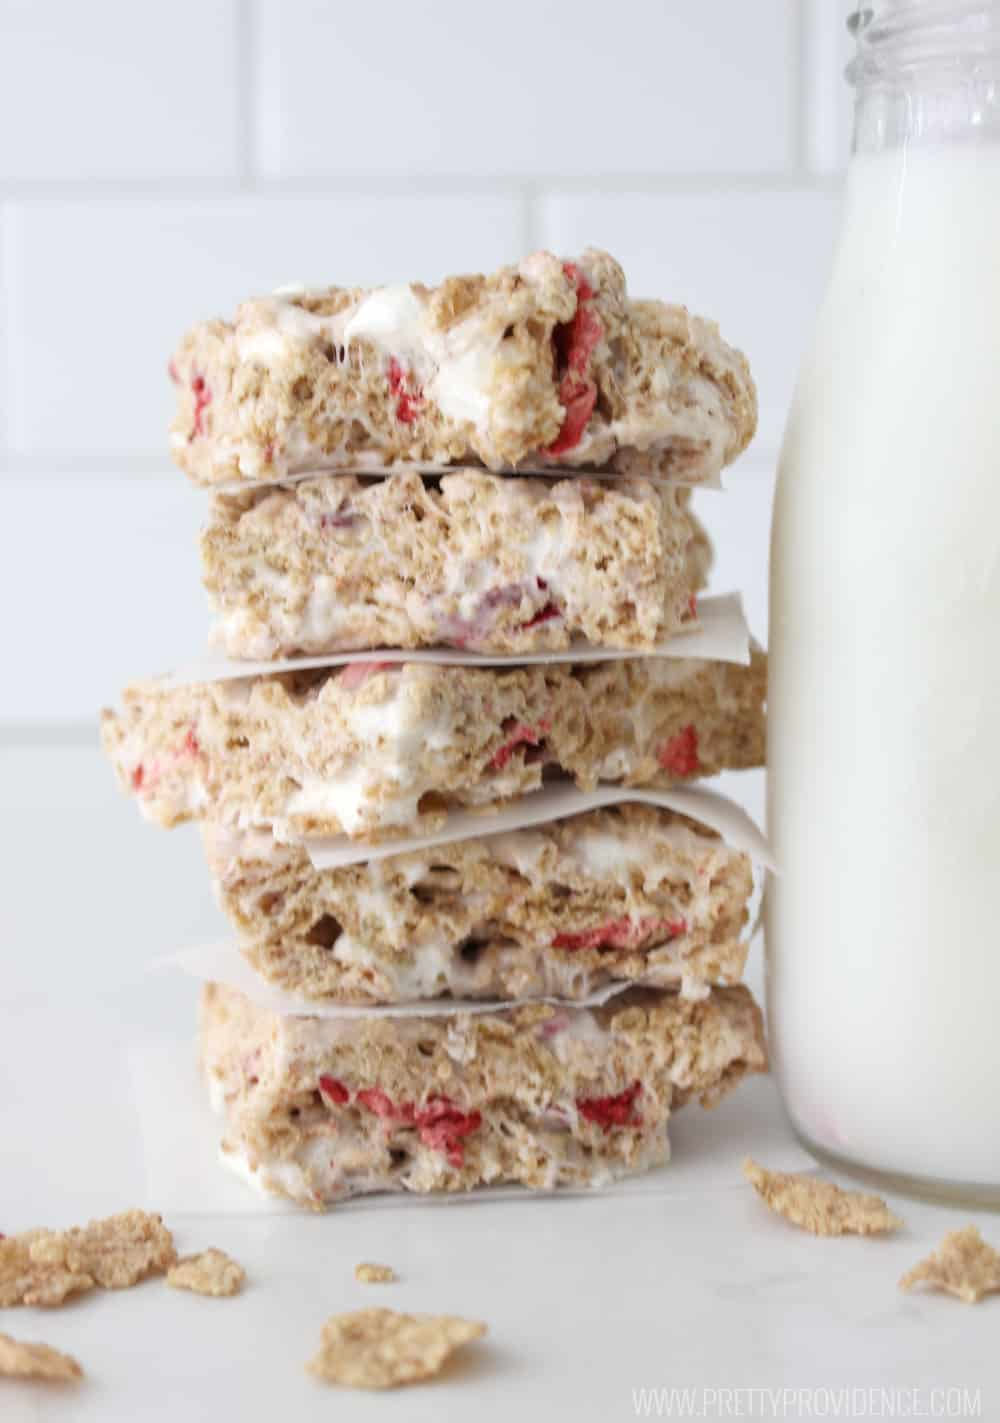 Strawberry cereal bars yummy strawberry cereal bars so easy to make but so flavorful and delicious ccuart Choice Image